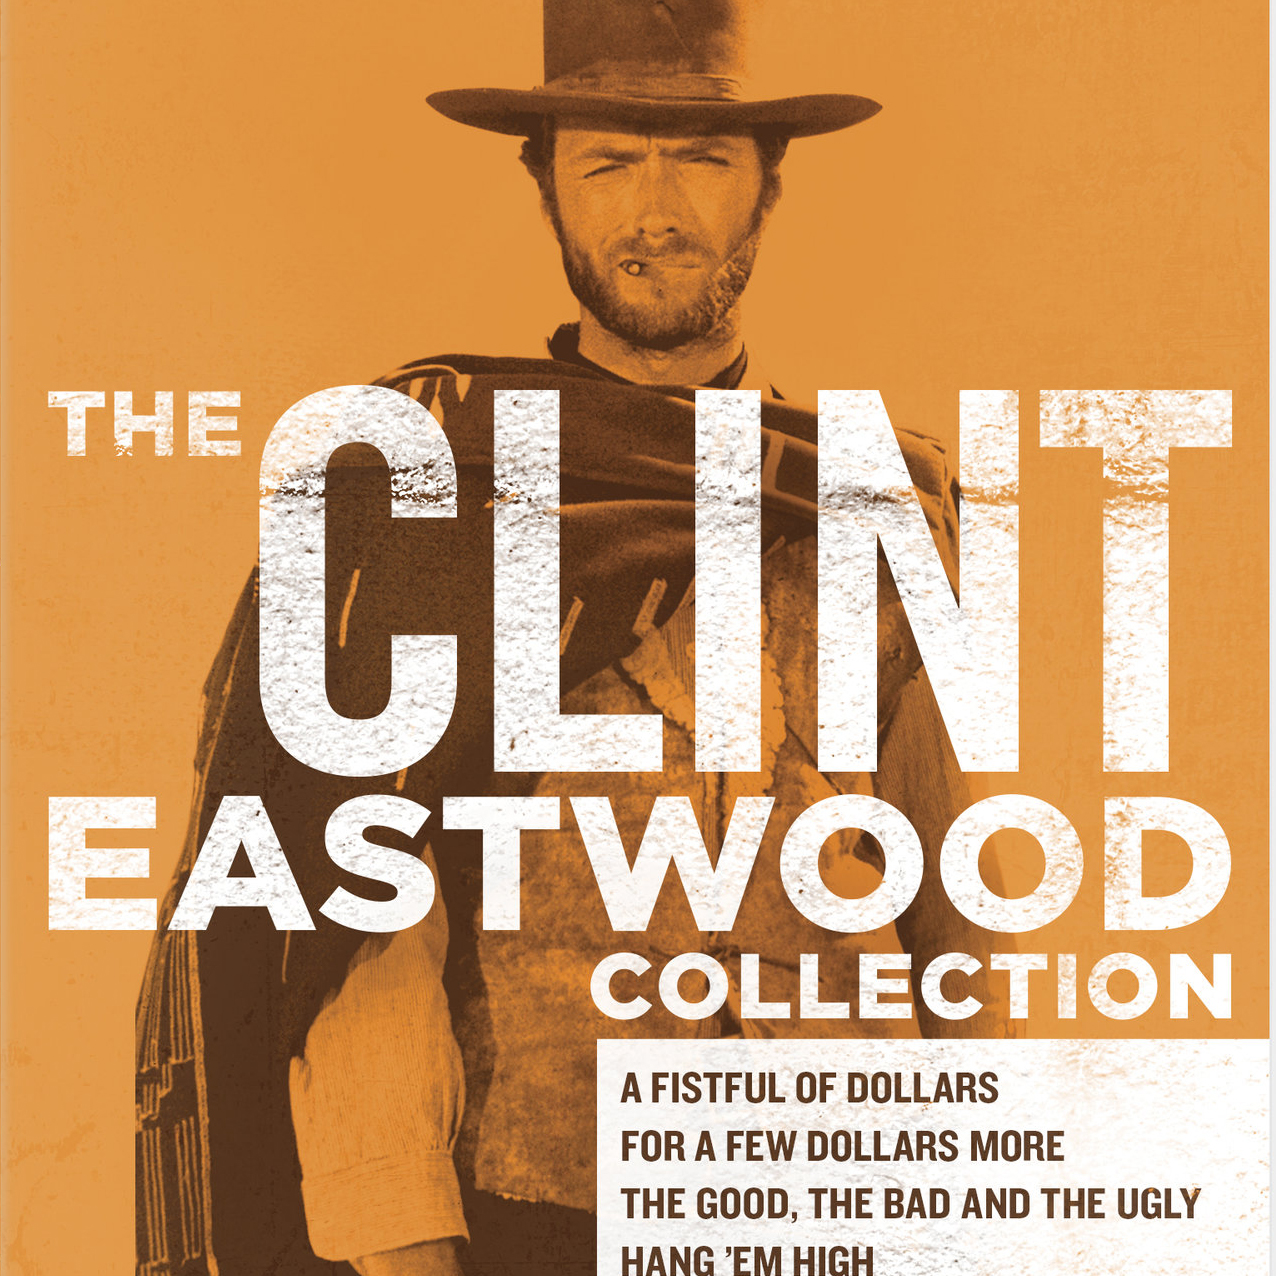 Clint Eastwood Keyart  See More →